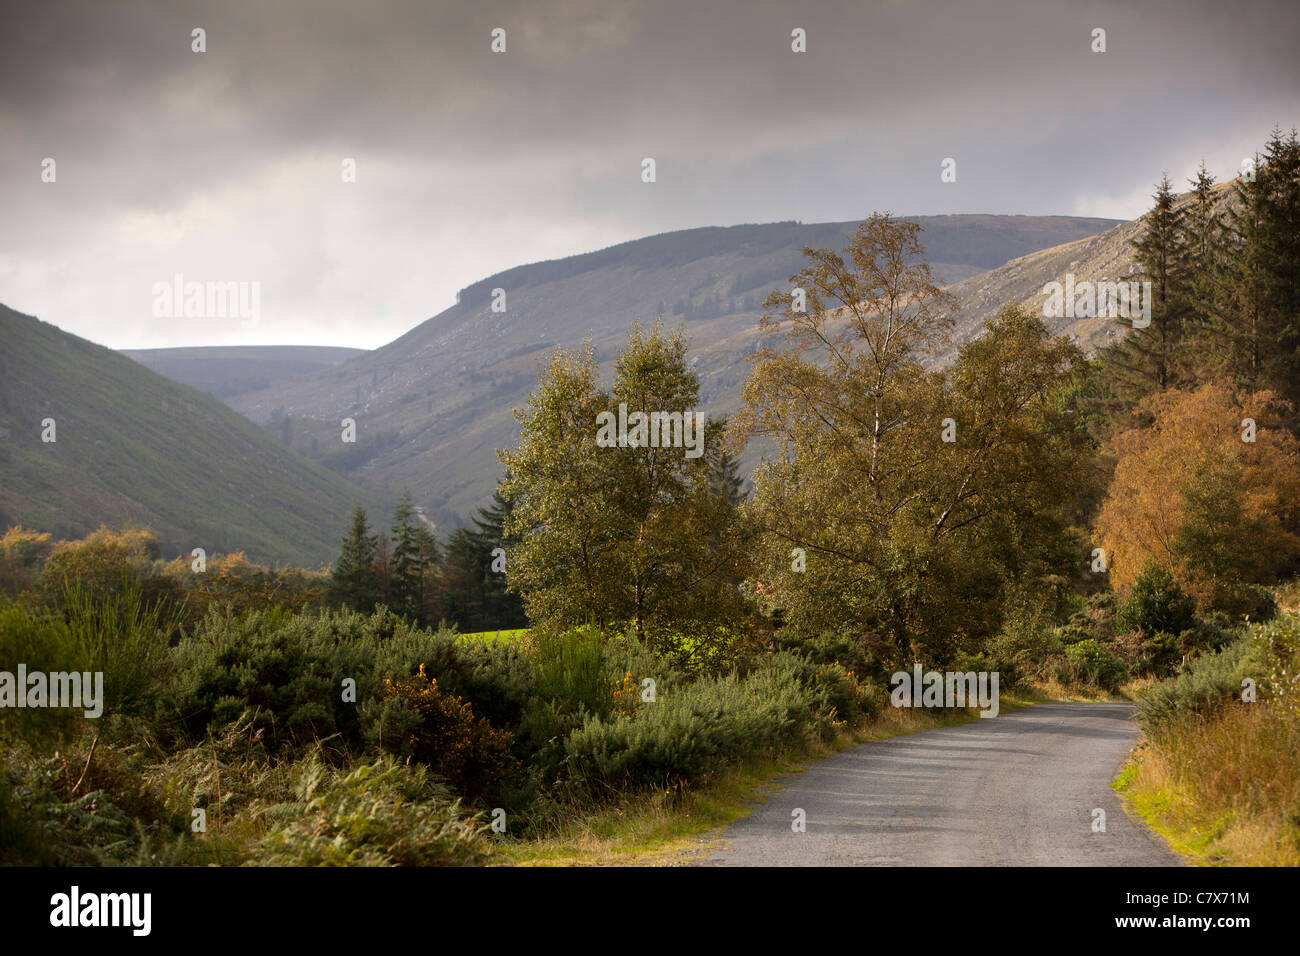 Wicklow Forest Stock Photos & Wicklow Forest Stock Images - Alamy